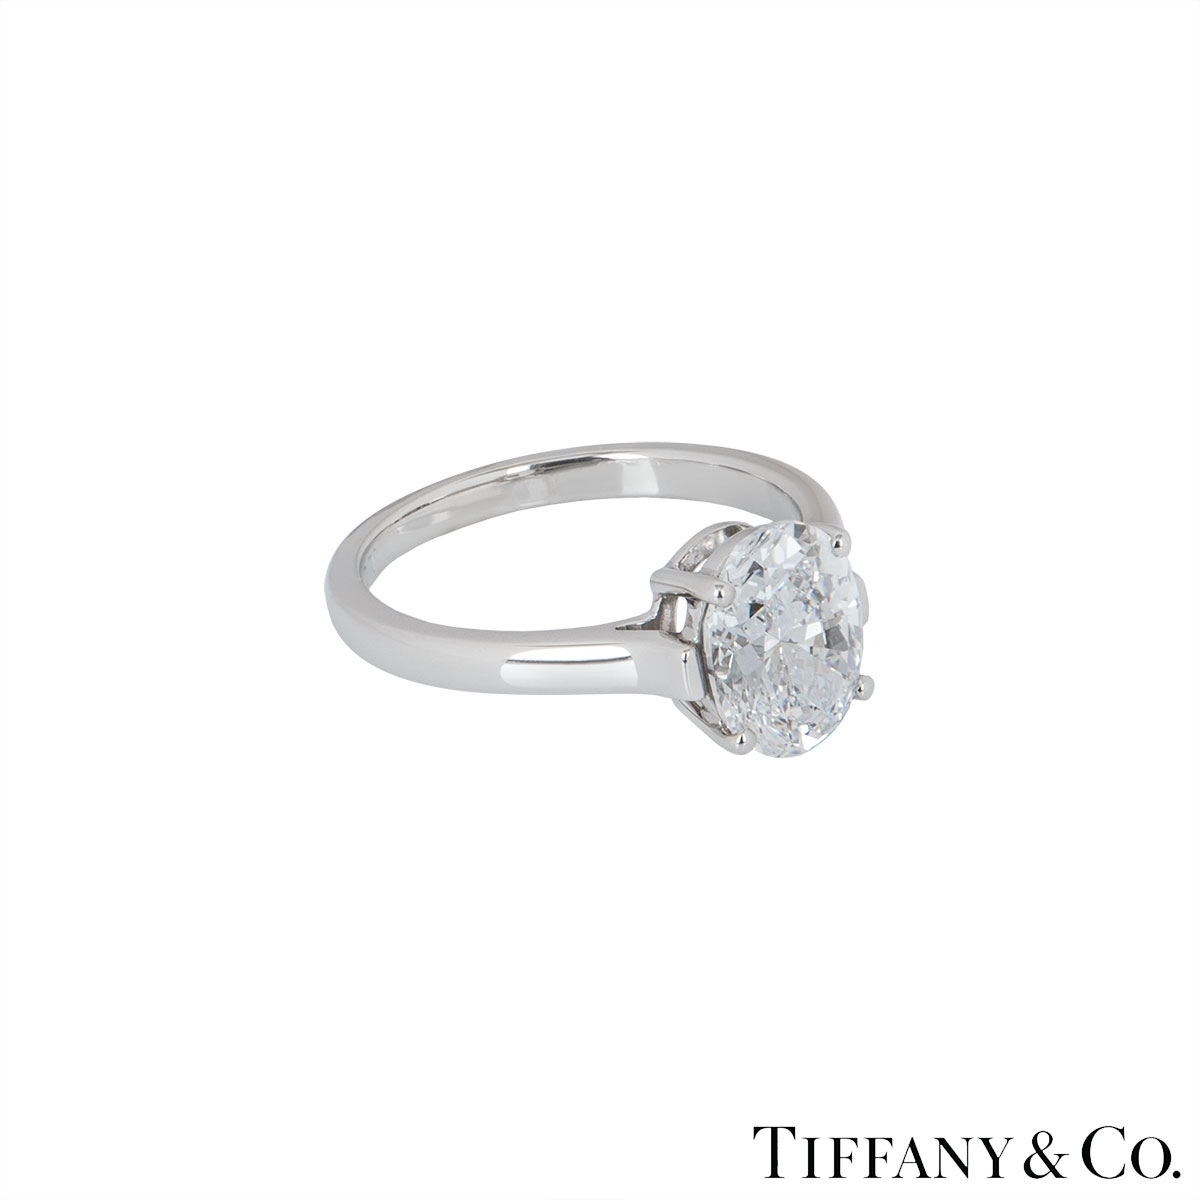 Tiffany & Co. Platinum Oval Diamond Ring 2.06ct D/VVS2